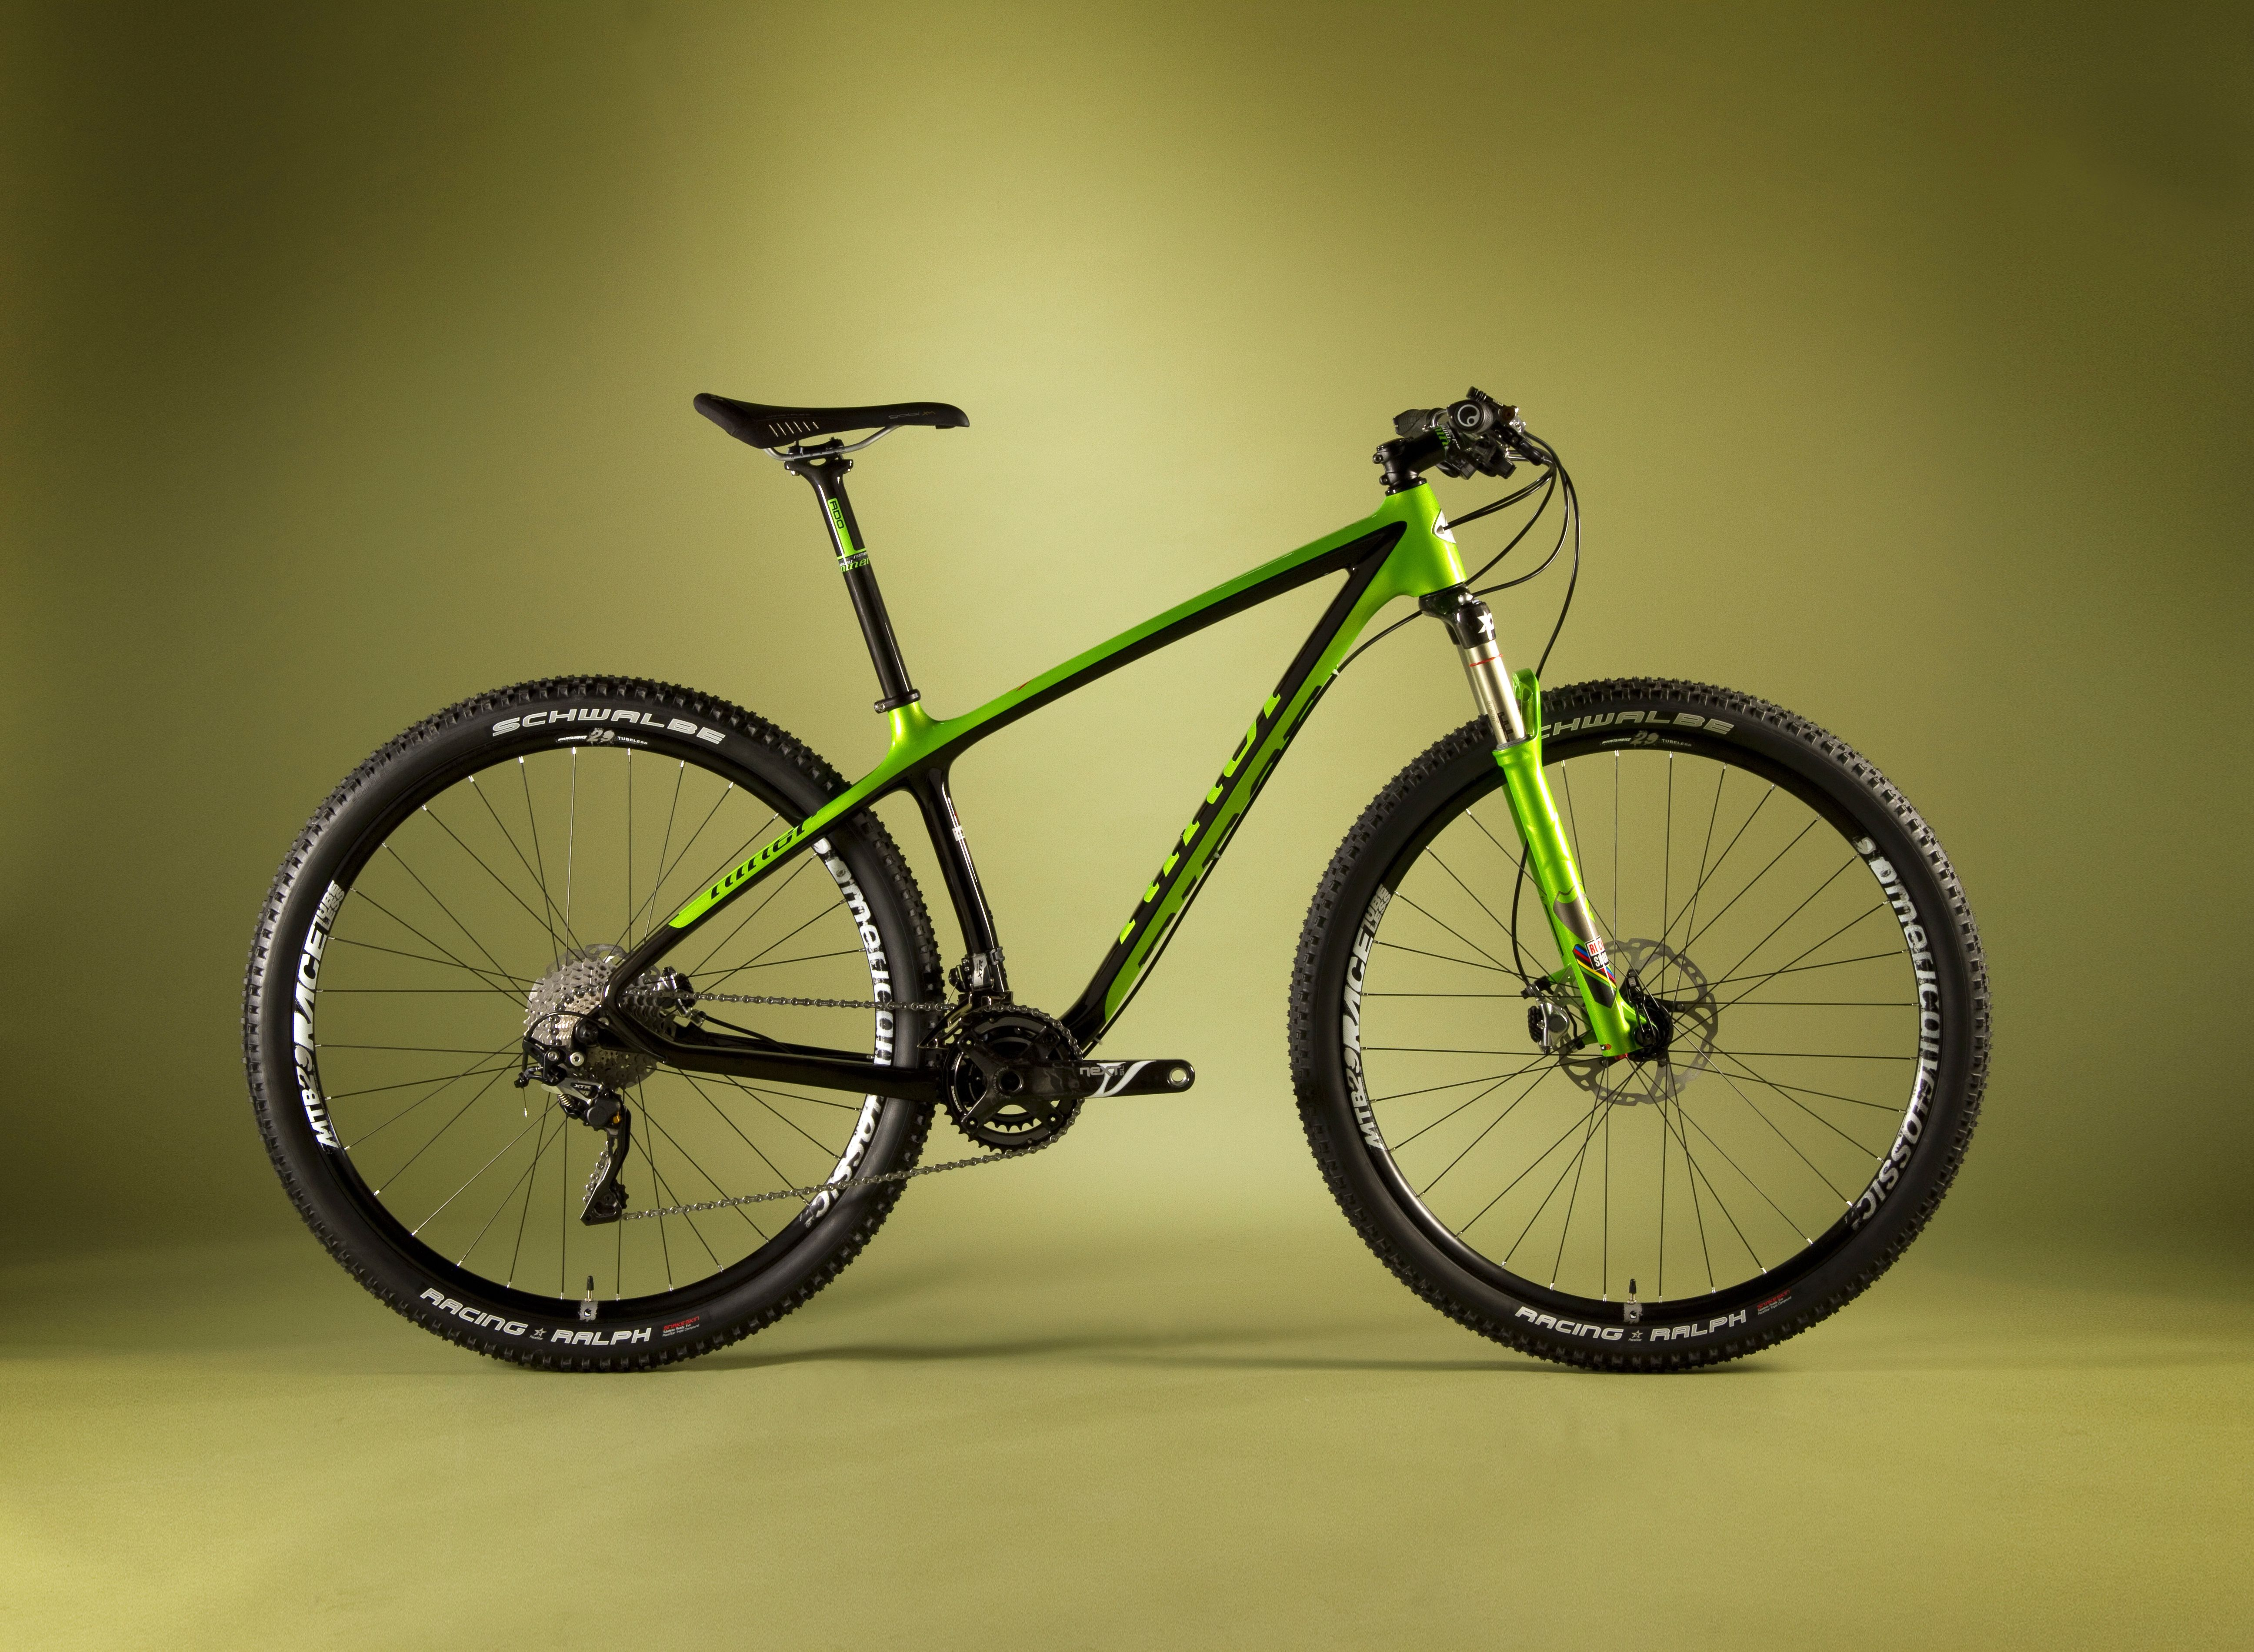 Niner Air 9 RDO - riding in style - a needed travel item | Horny ...